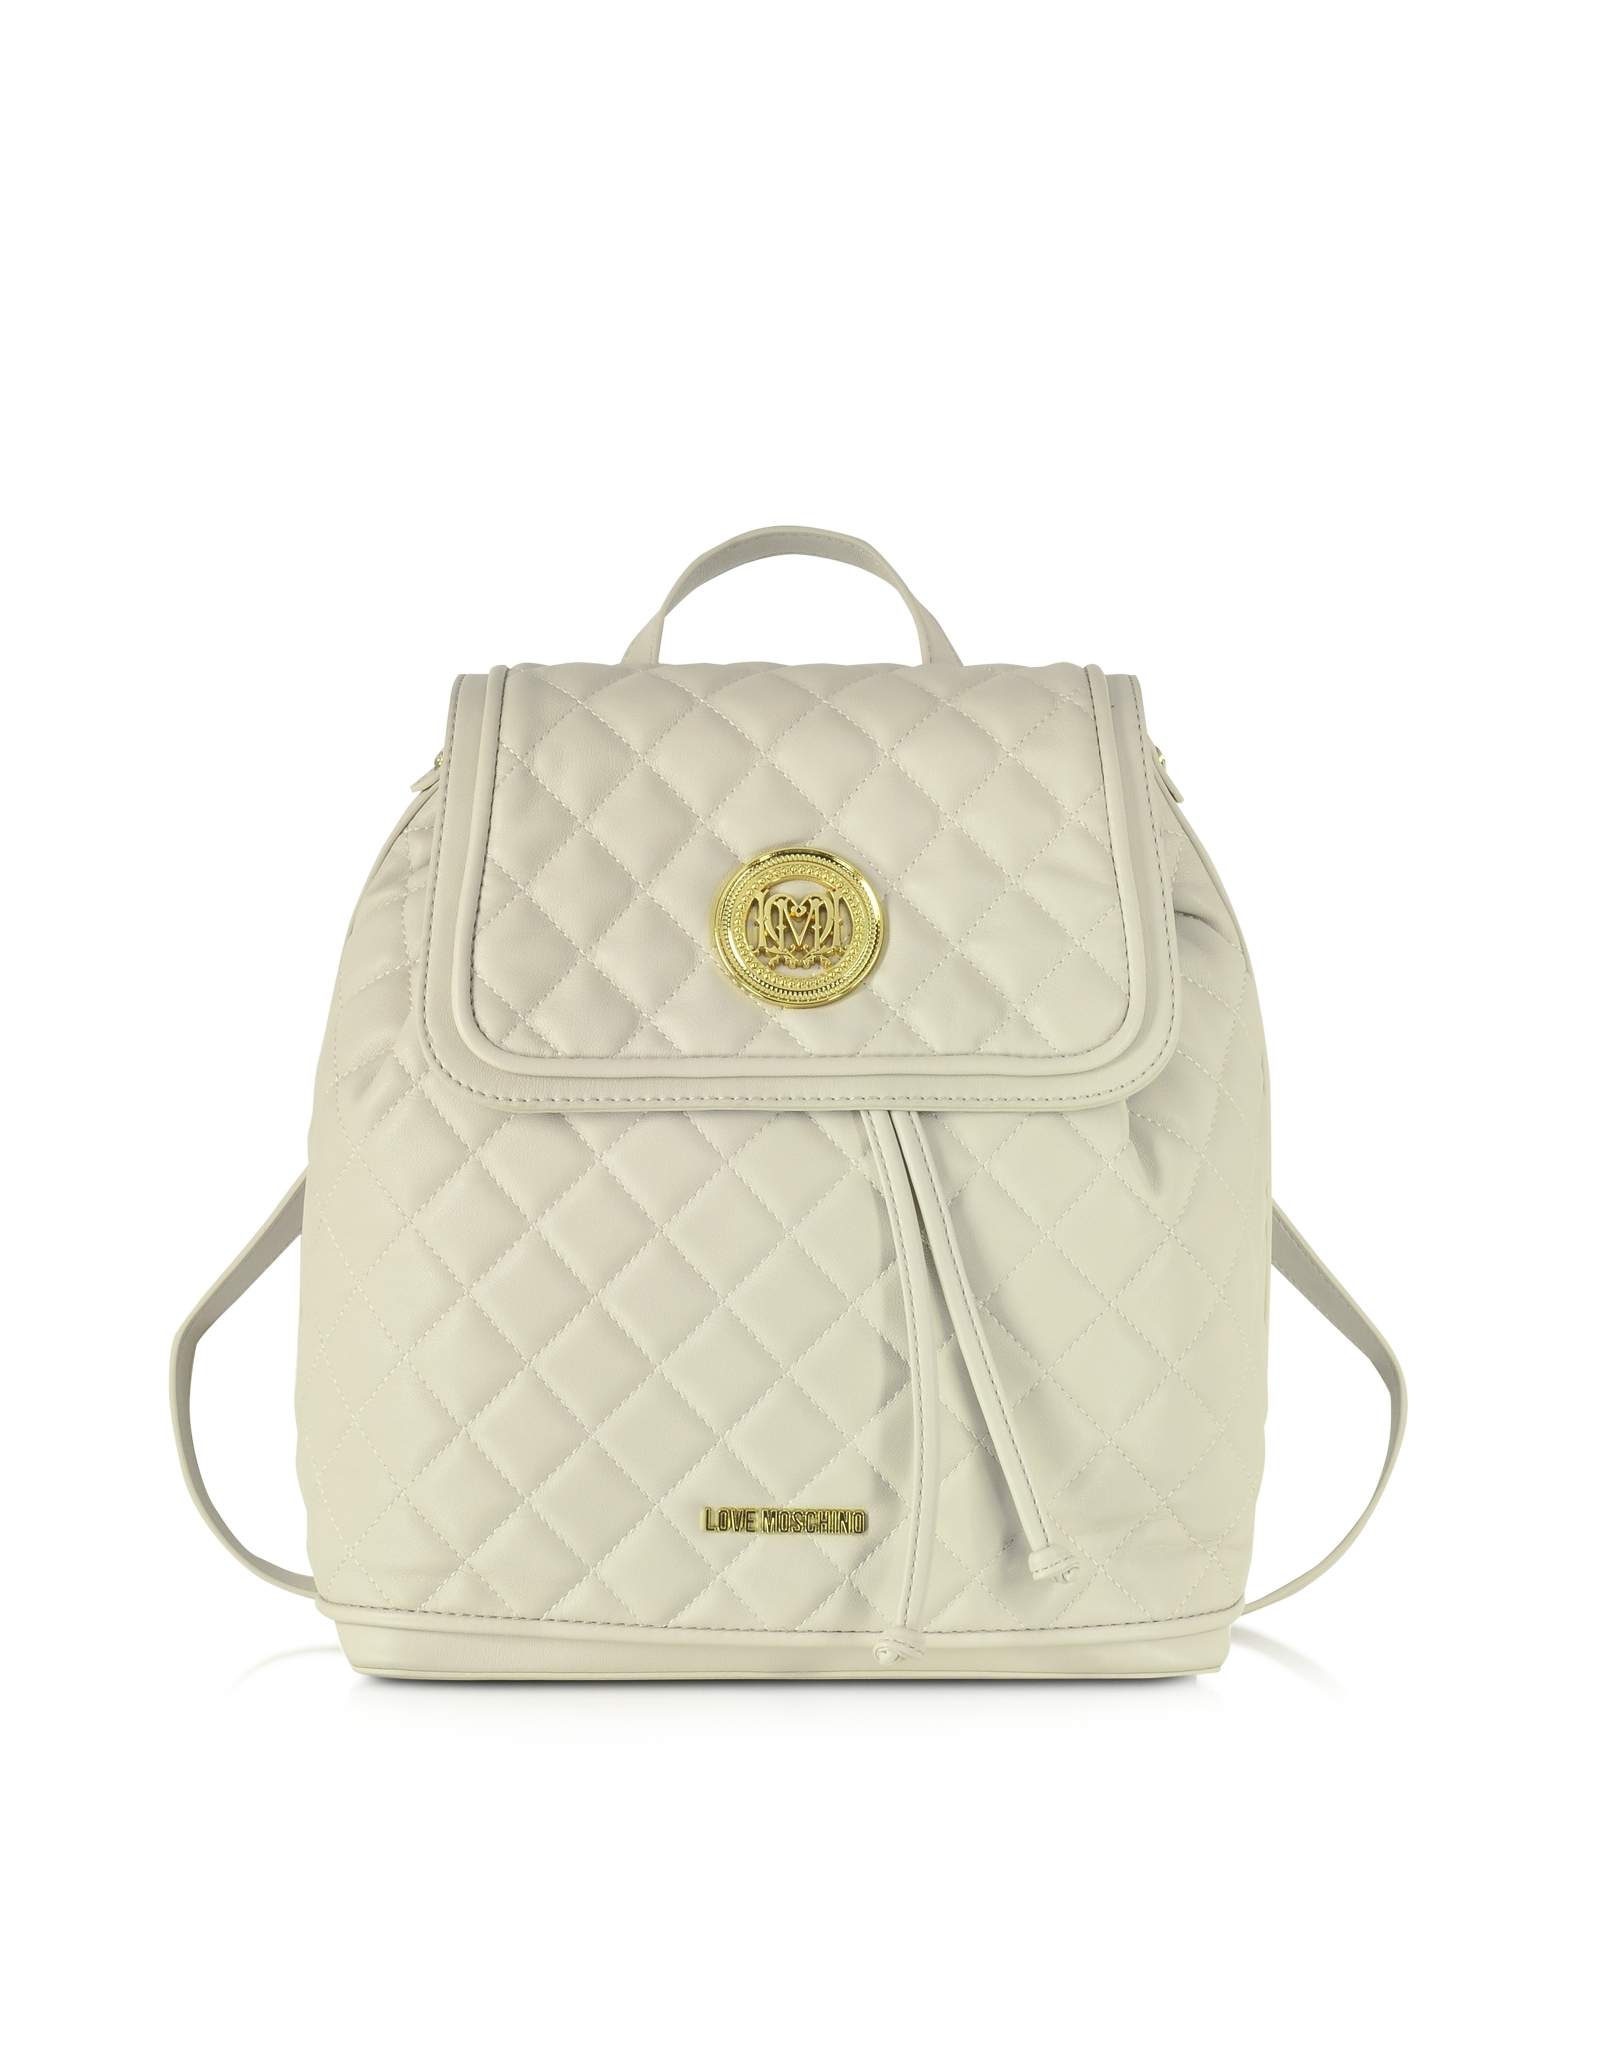 Lyst - Love Moschino Large Quilted Eco Leather Backpack in White e89d24d683b09